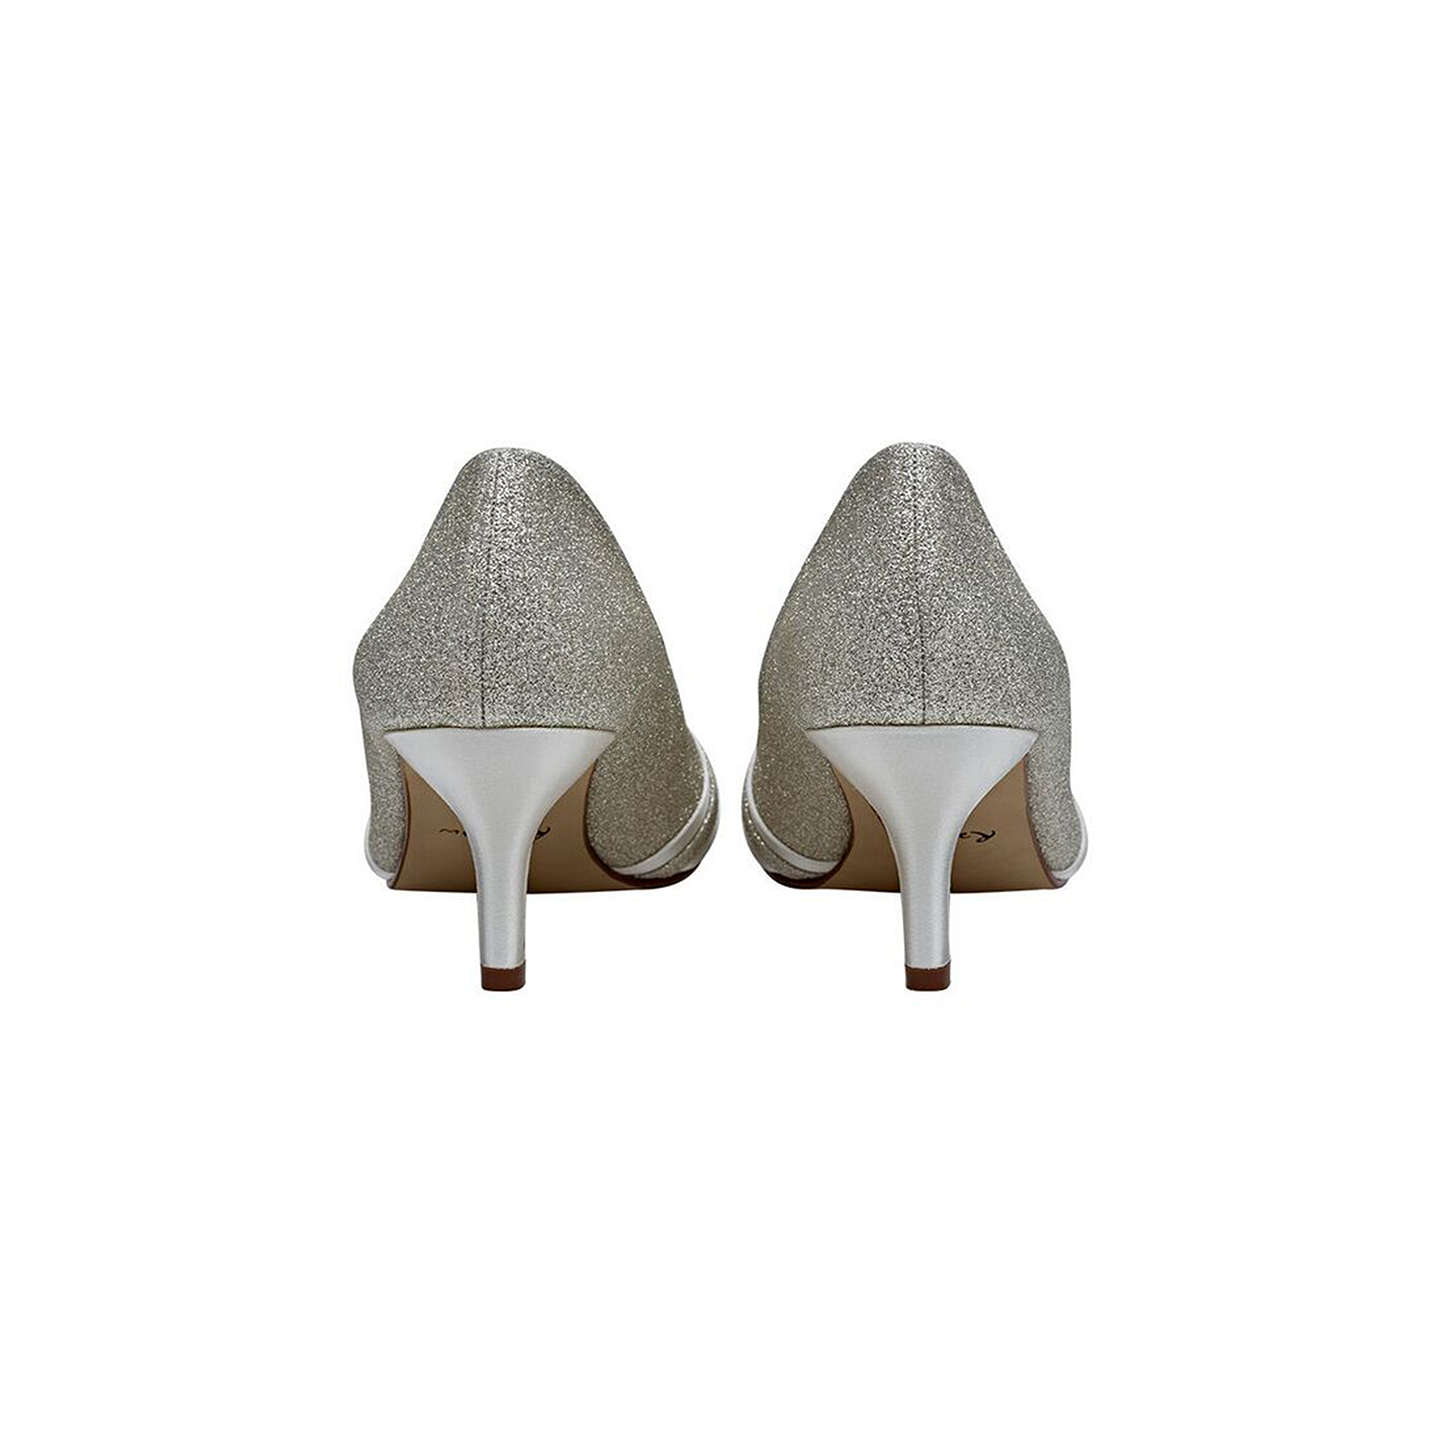 BuyRainbow Club Margie Peep Toe Stiletto Sandals, Ivory, 3 Online at johnlewis.com